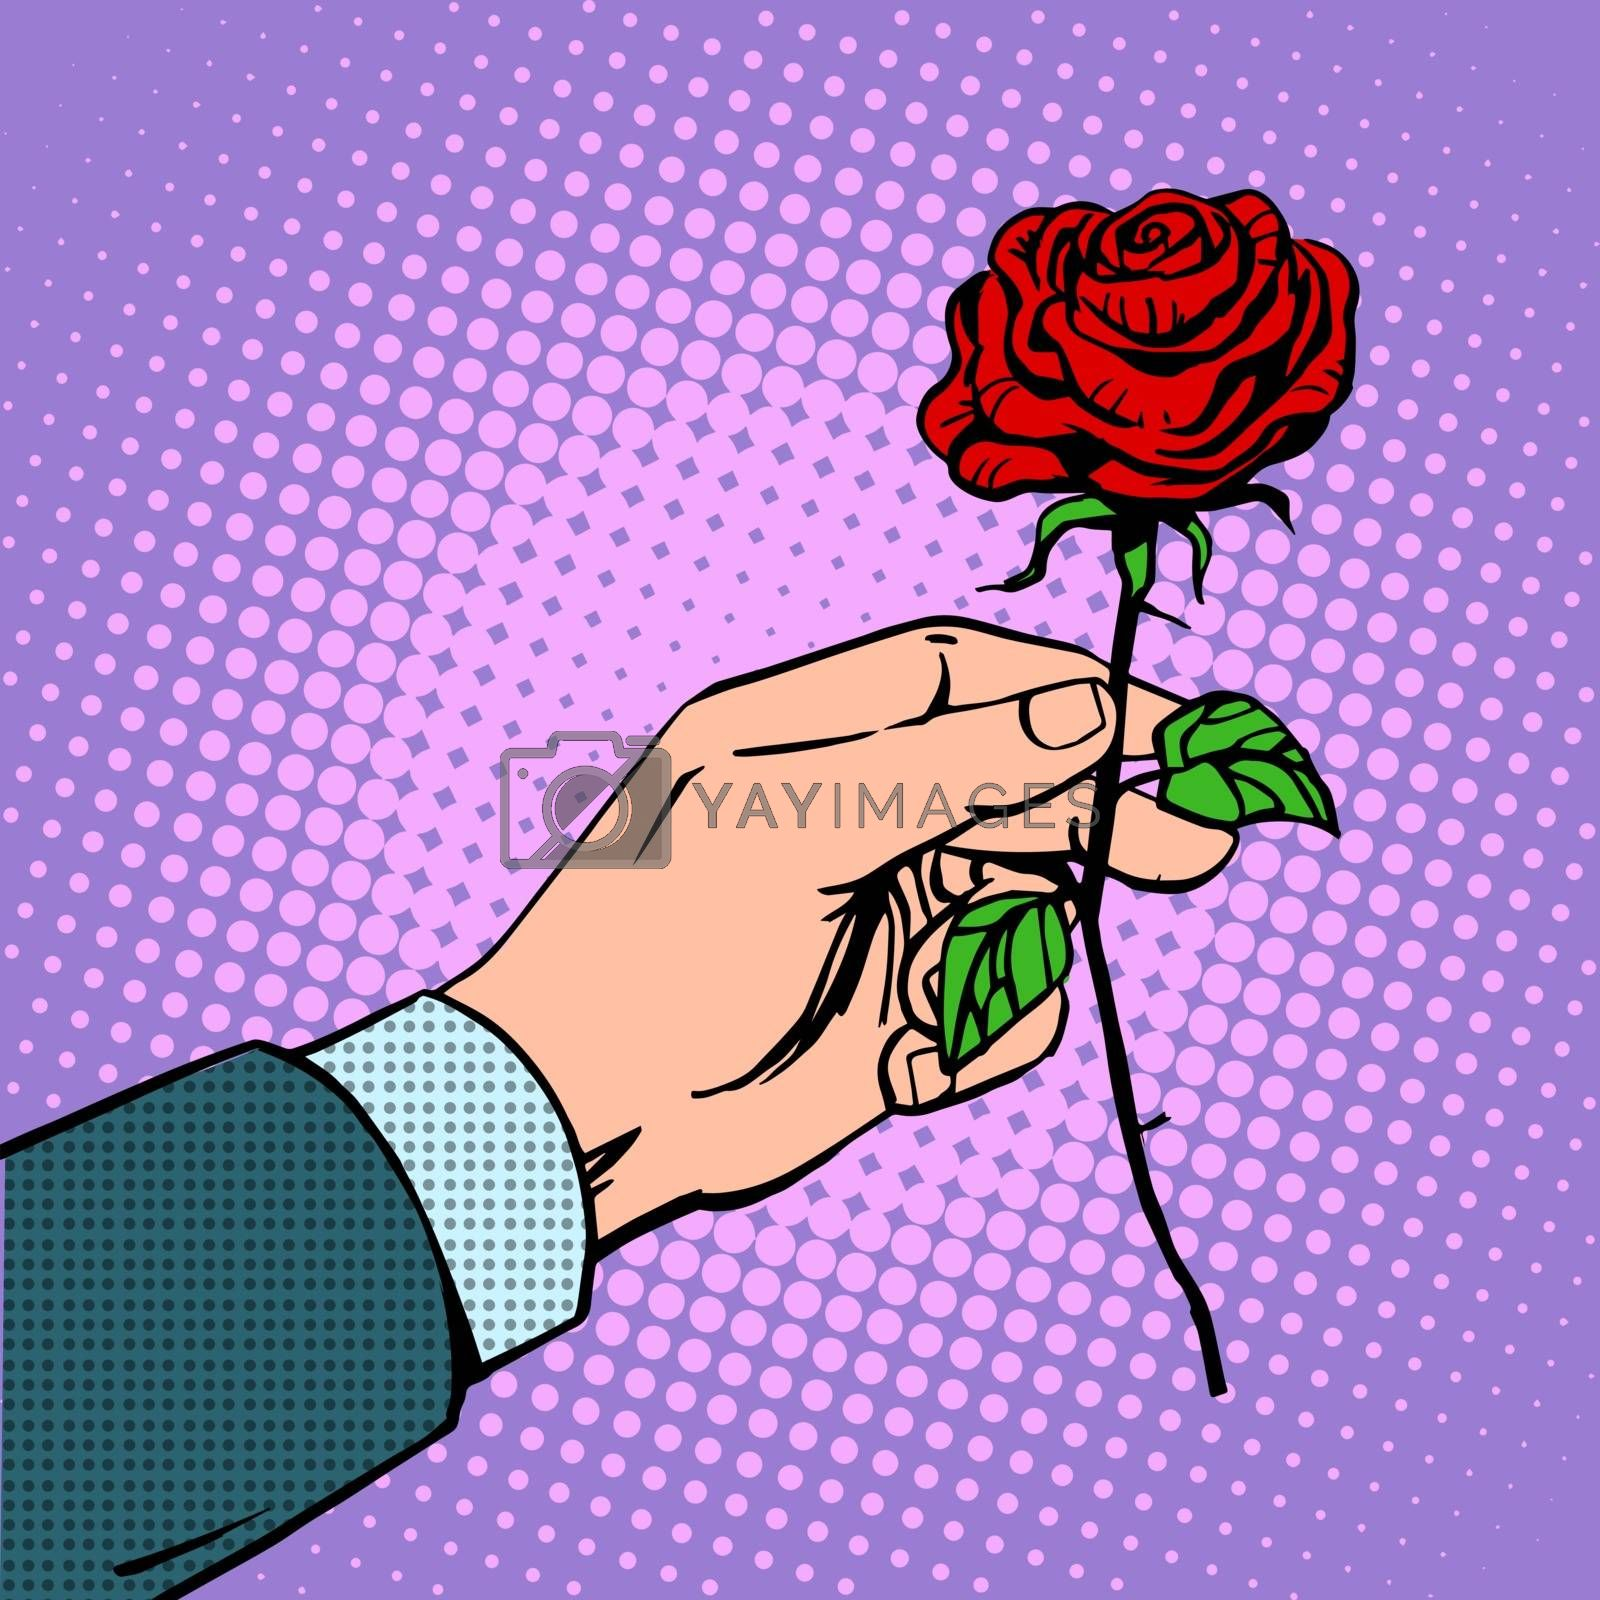 The man gives a flower rose love romance Dating red. Retro style pop art vintage